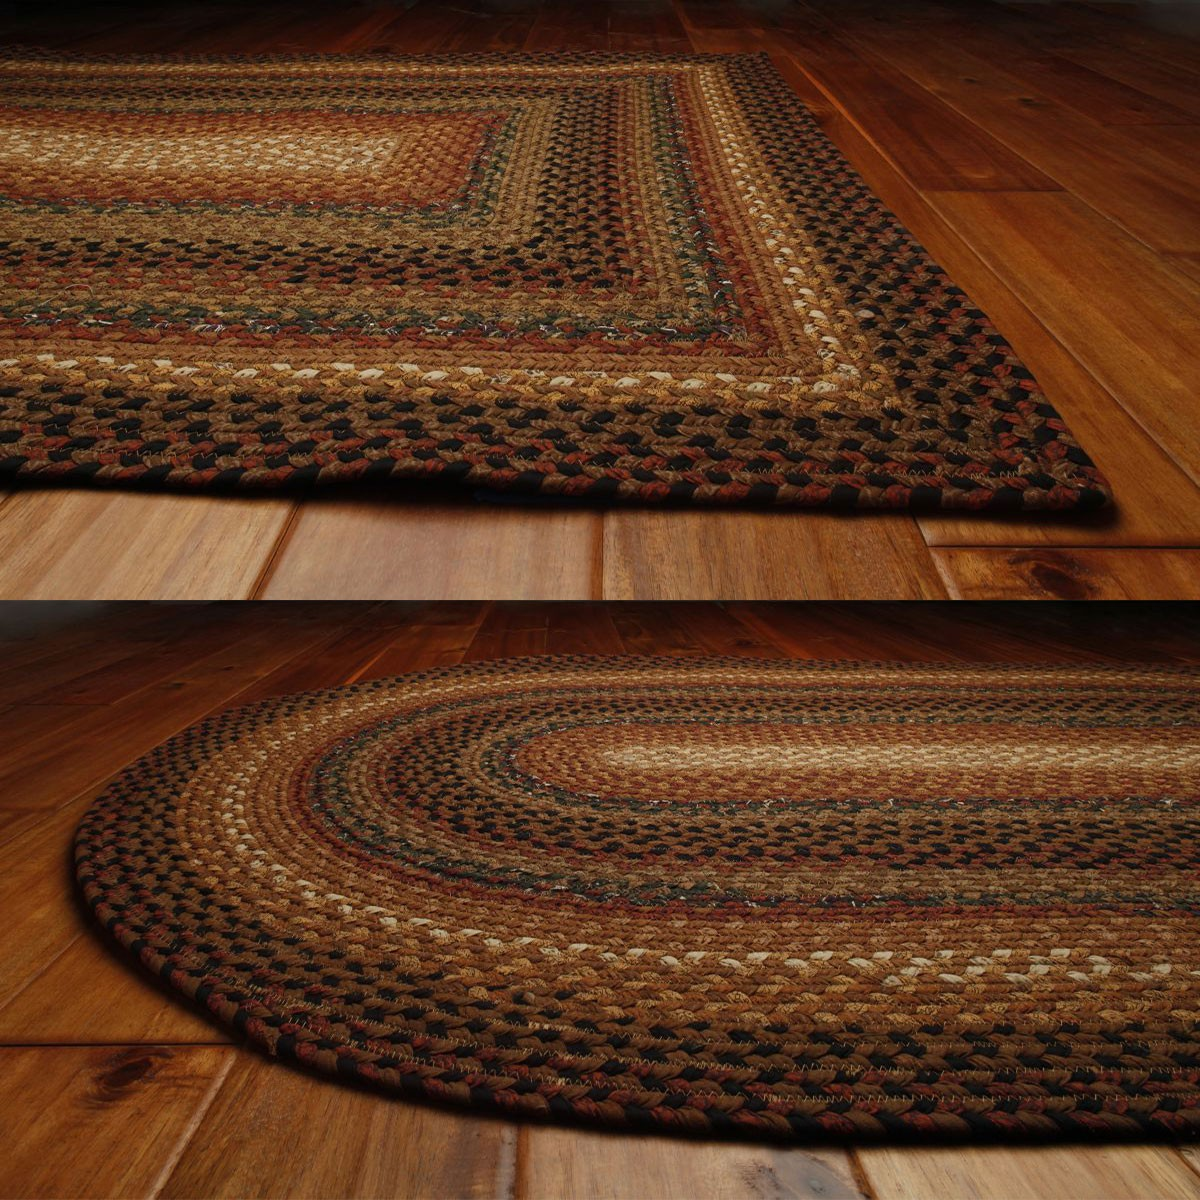 Peppercorn Cotton Braided Rugs : peppercorn cotton braided rugs e69 from www.homespice.com size 1200 x 1200 jpeg 438kB